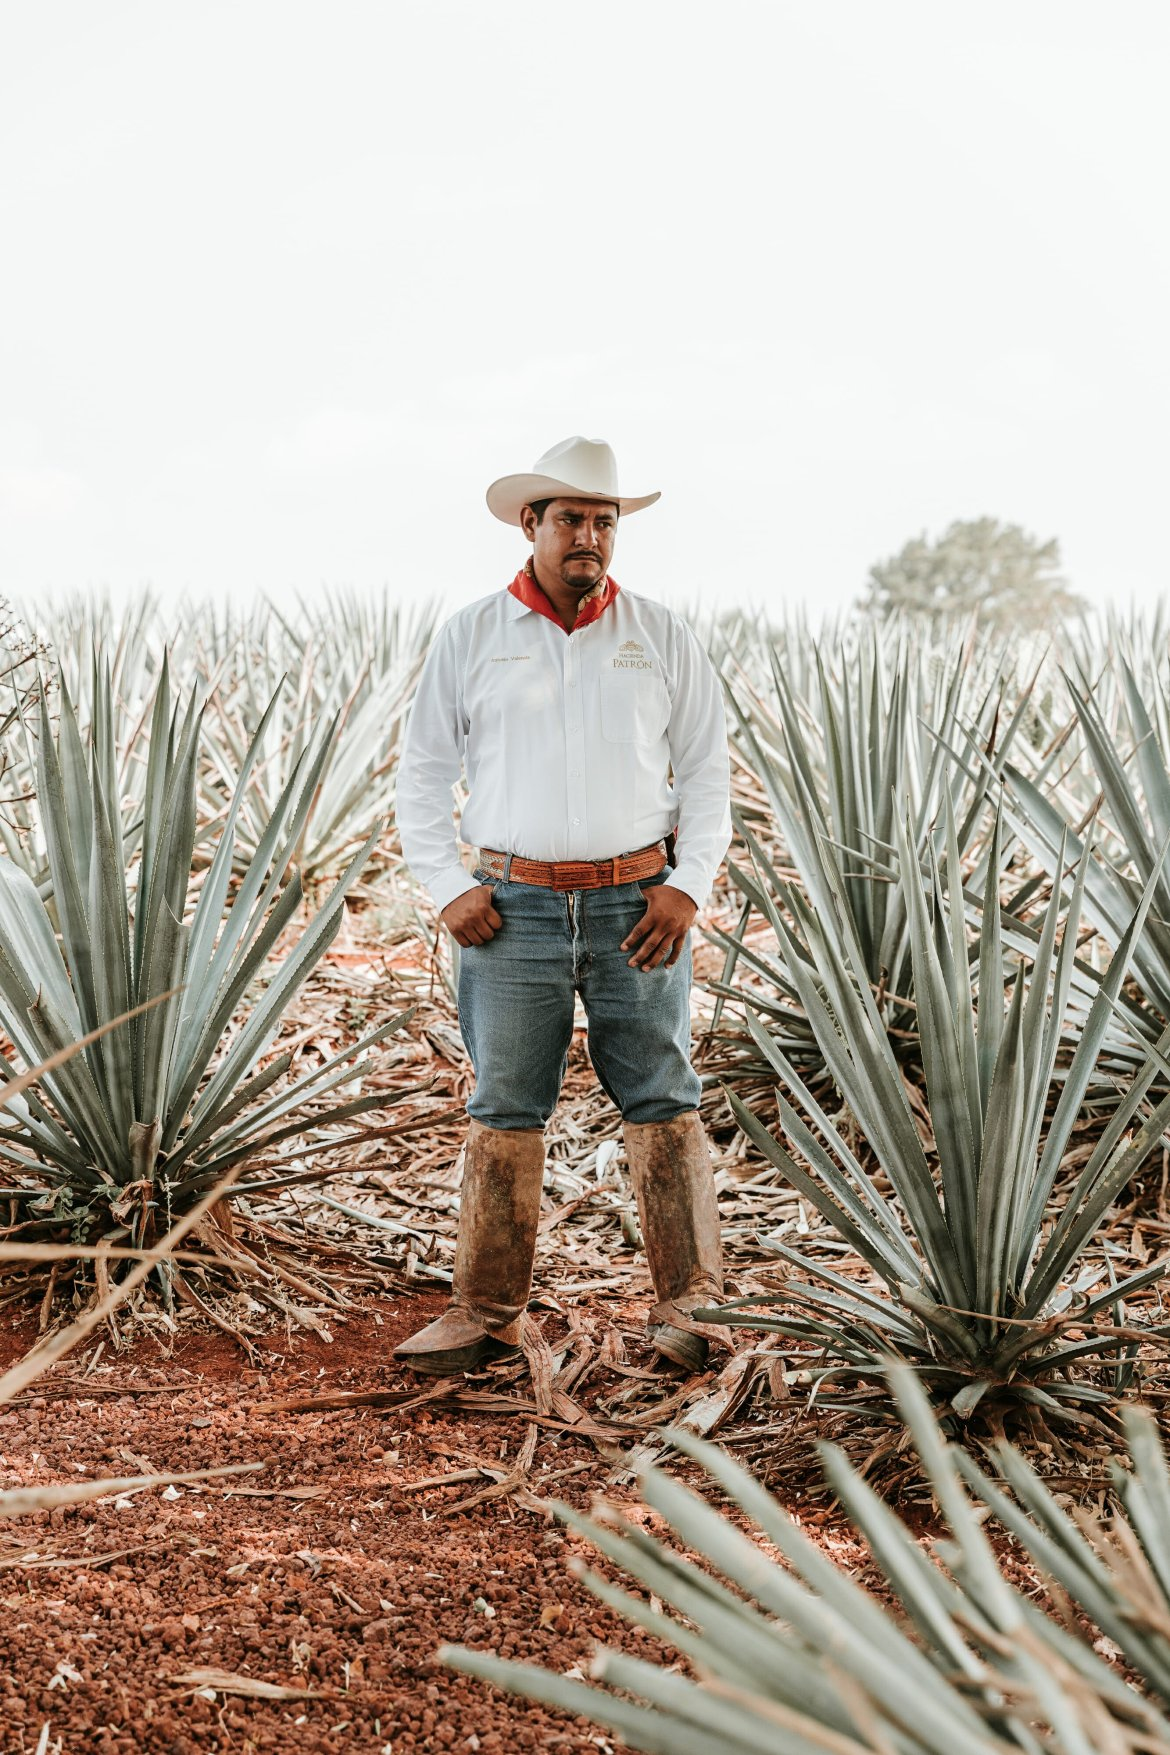 jimador in agave field